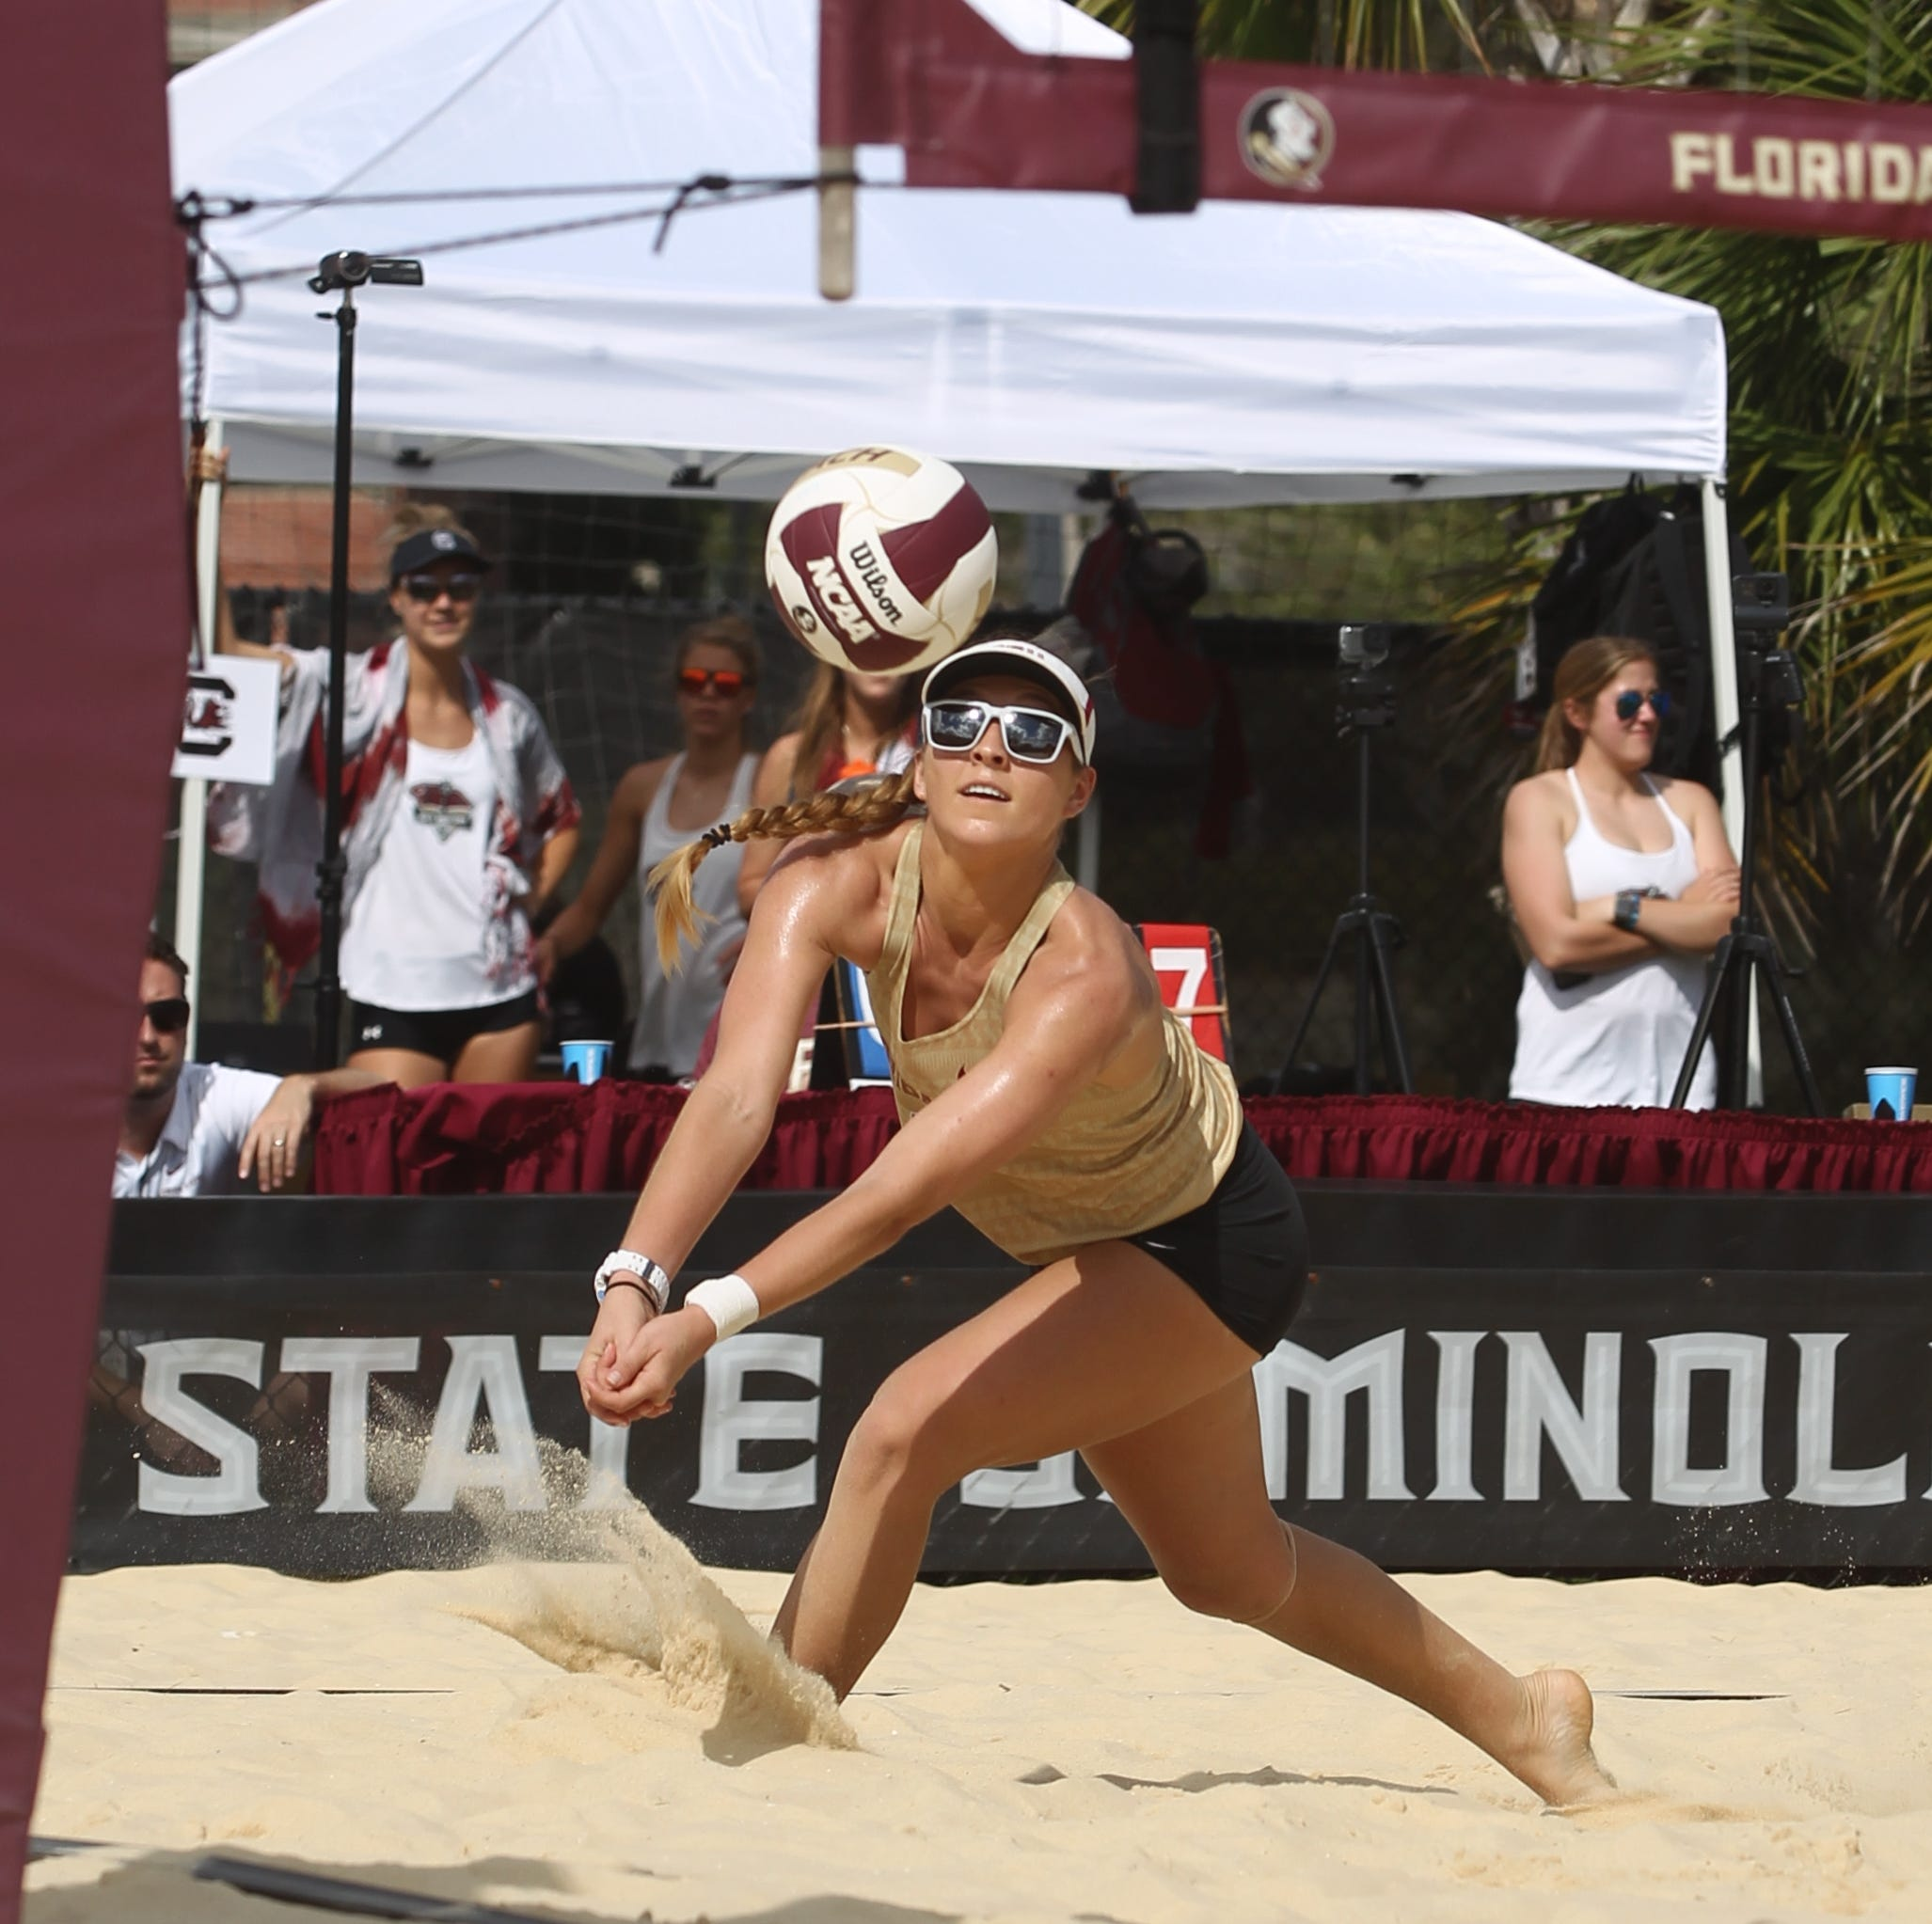 Florida State hungry entering NCAA Championships after last year's close call